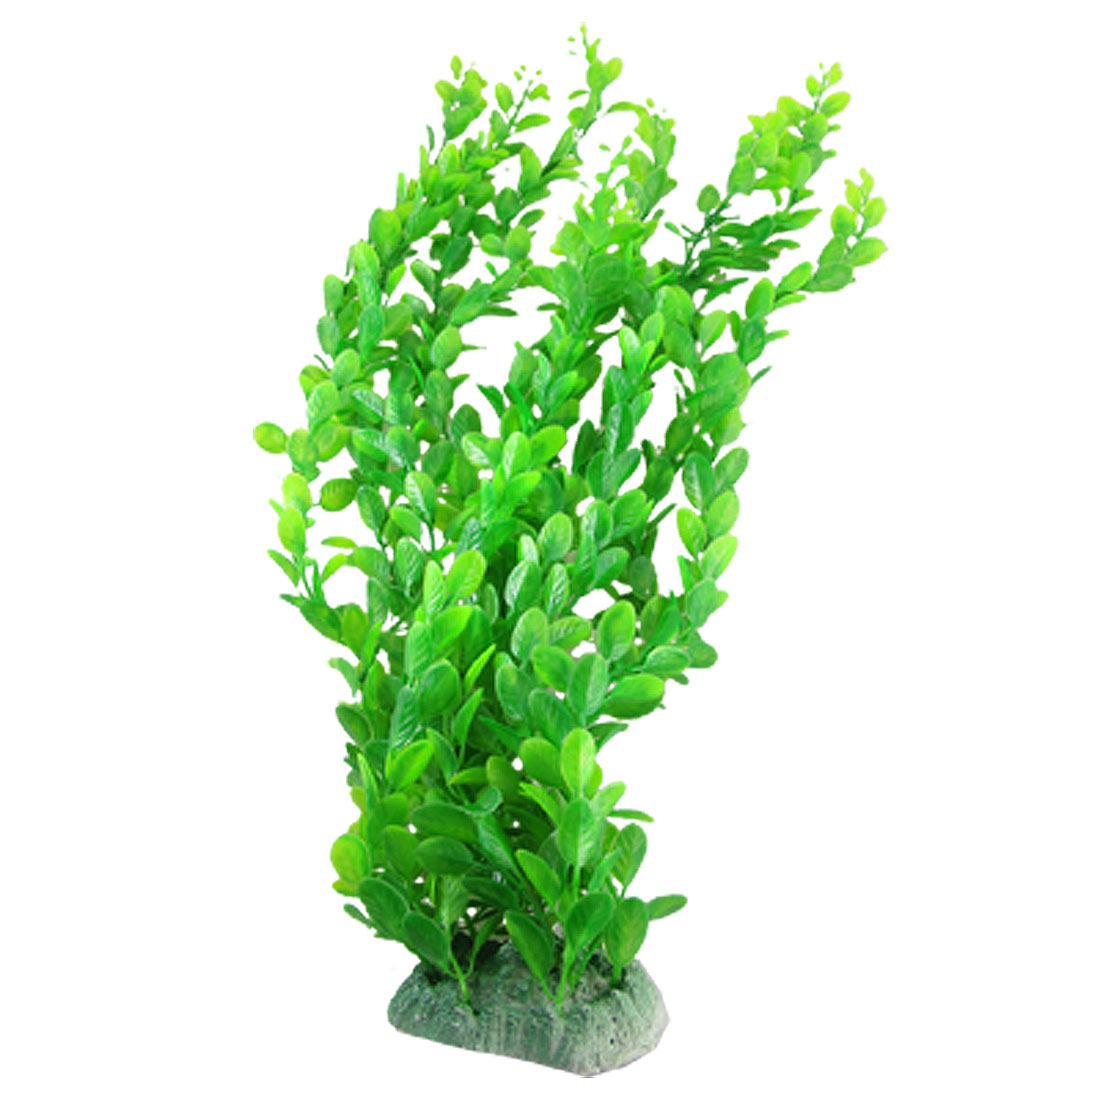 Plant Decor Plastic Green Grass for Fish Tank Aquarium